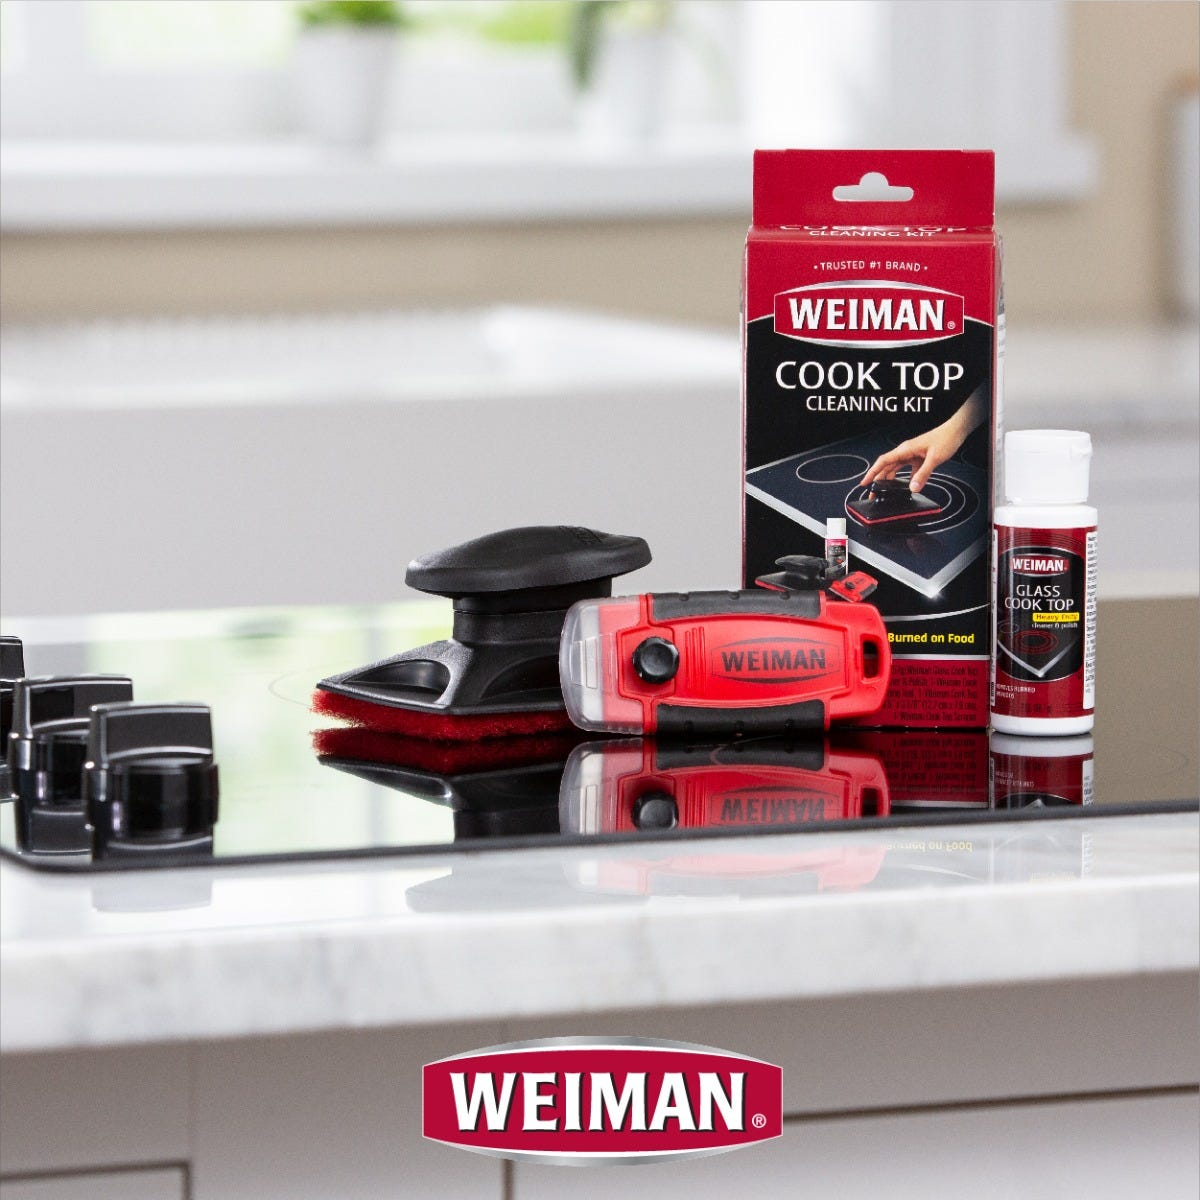 Cooktop Cleaning Kit Weiman Back Label And Components